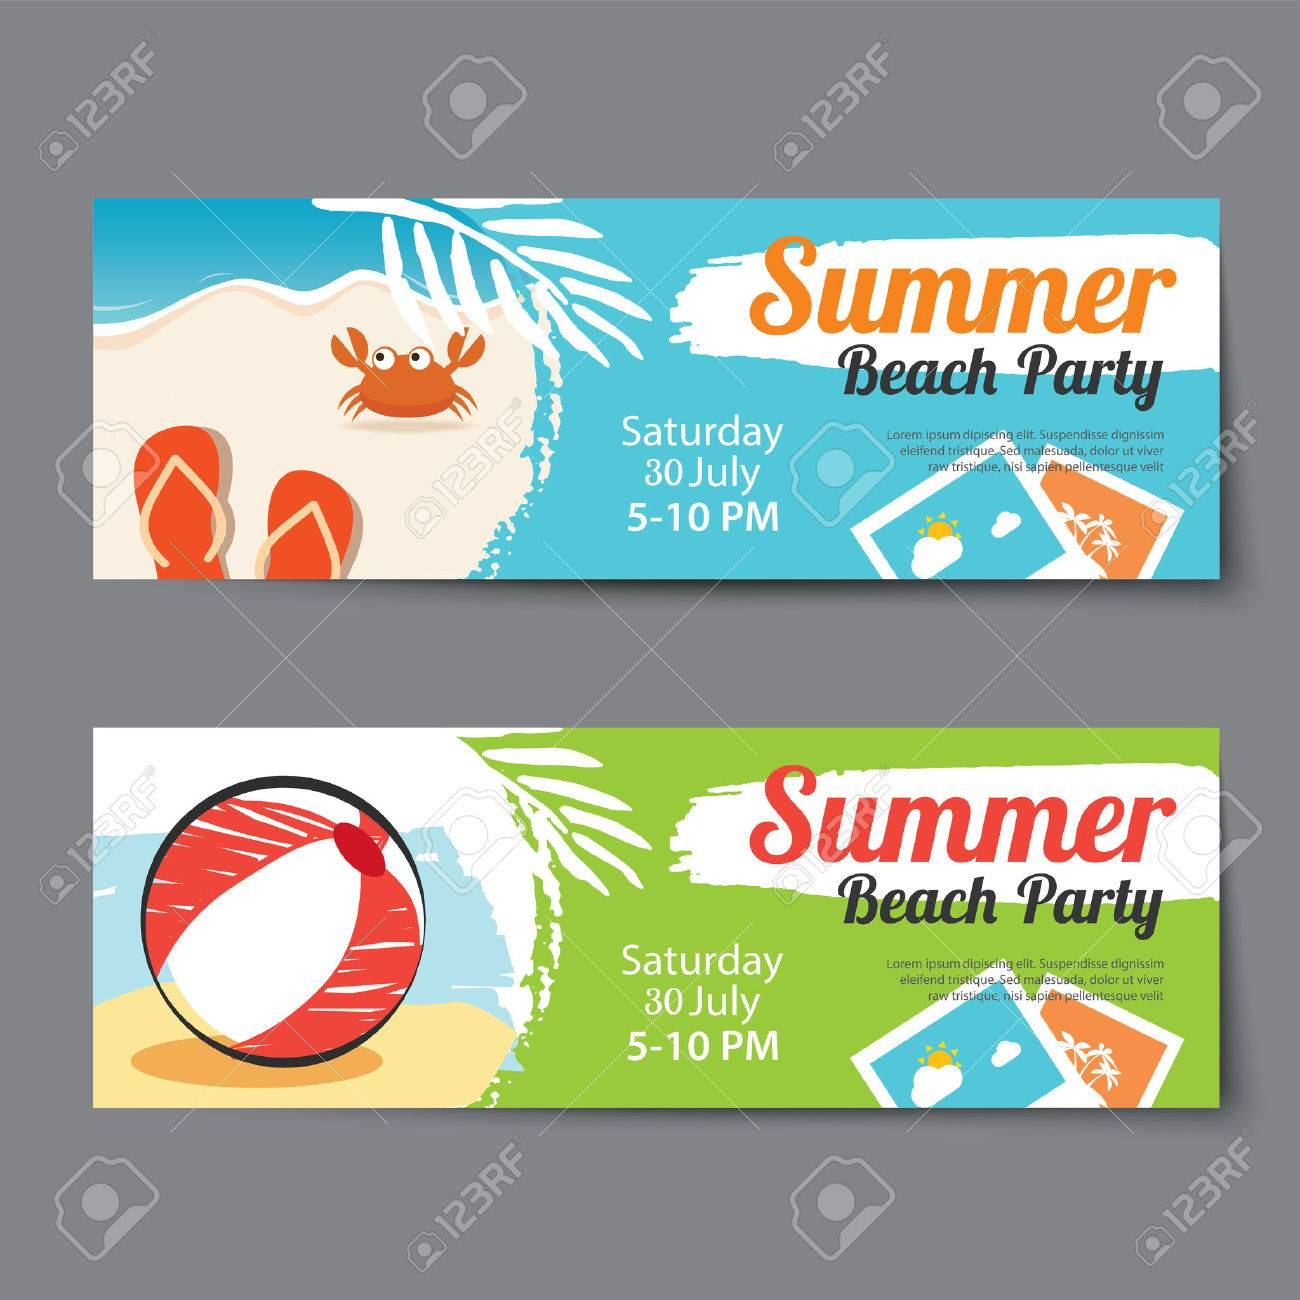 Summer Pool Party Ticket Template Royalty Free Cliparts, Vectors ...